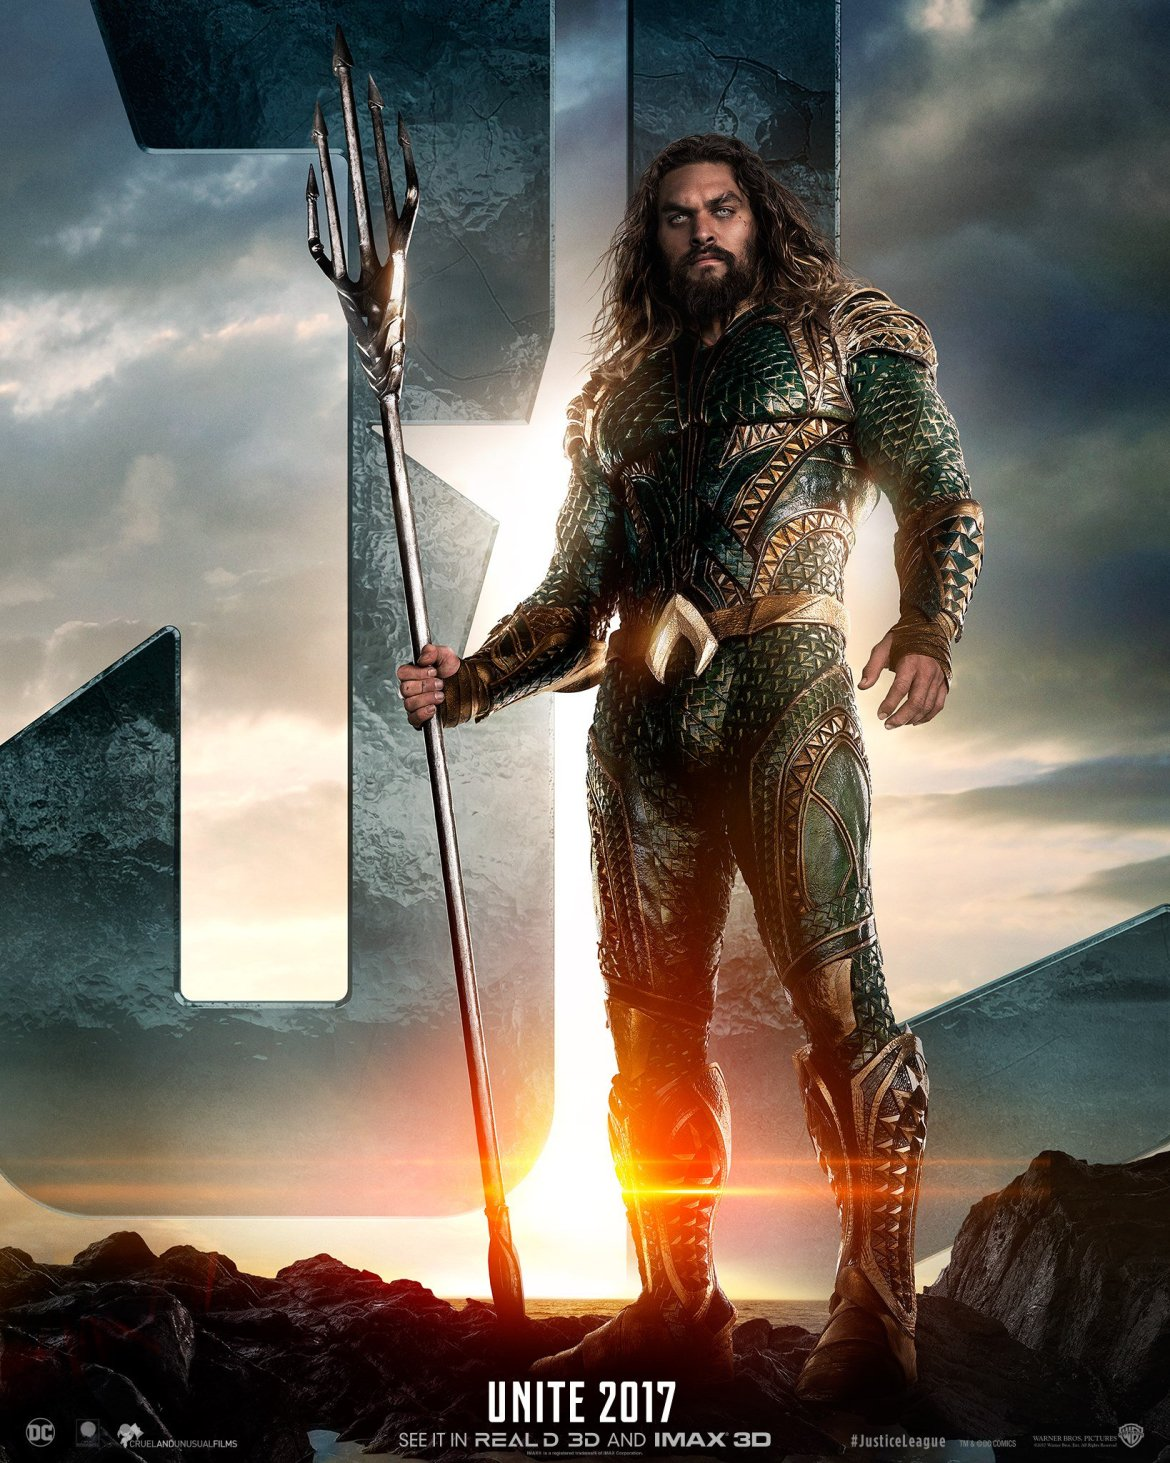 UPDATE: Justice League promo kicks off with Aquaman